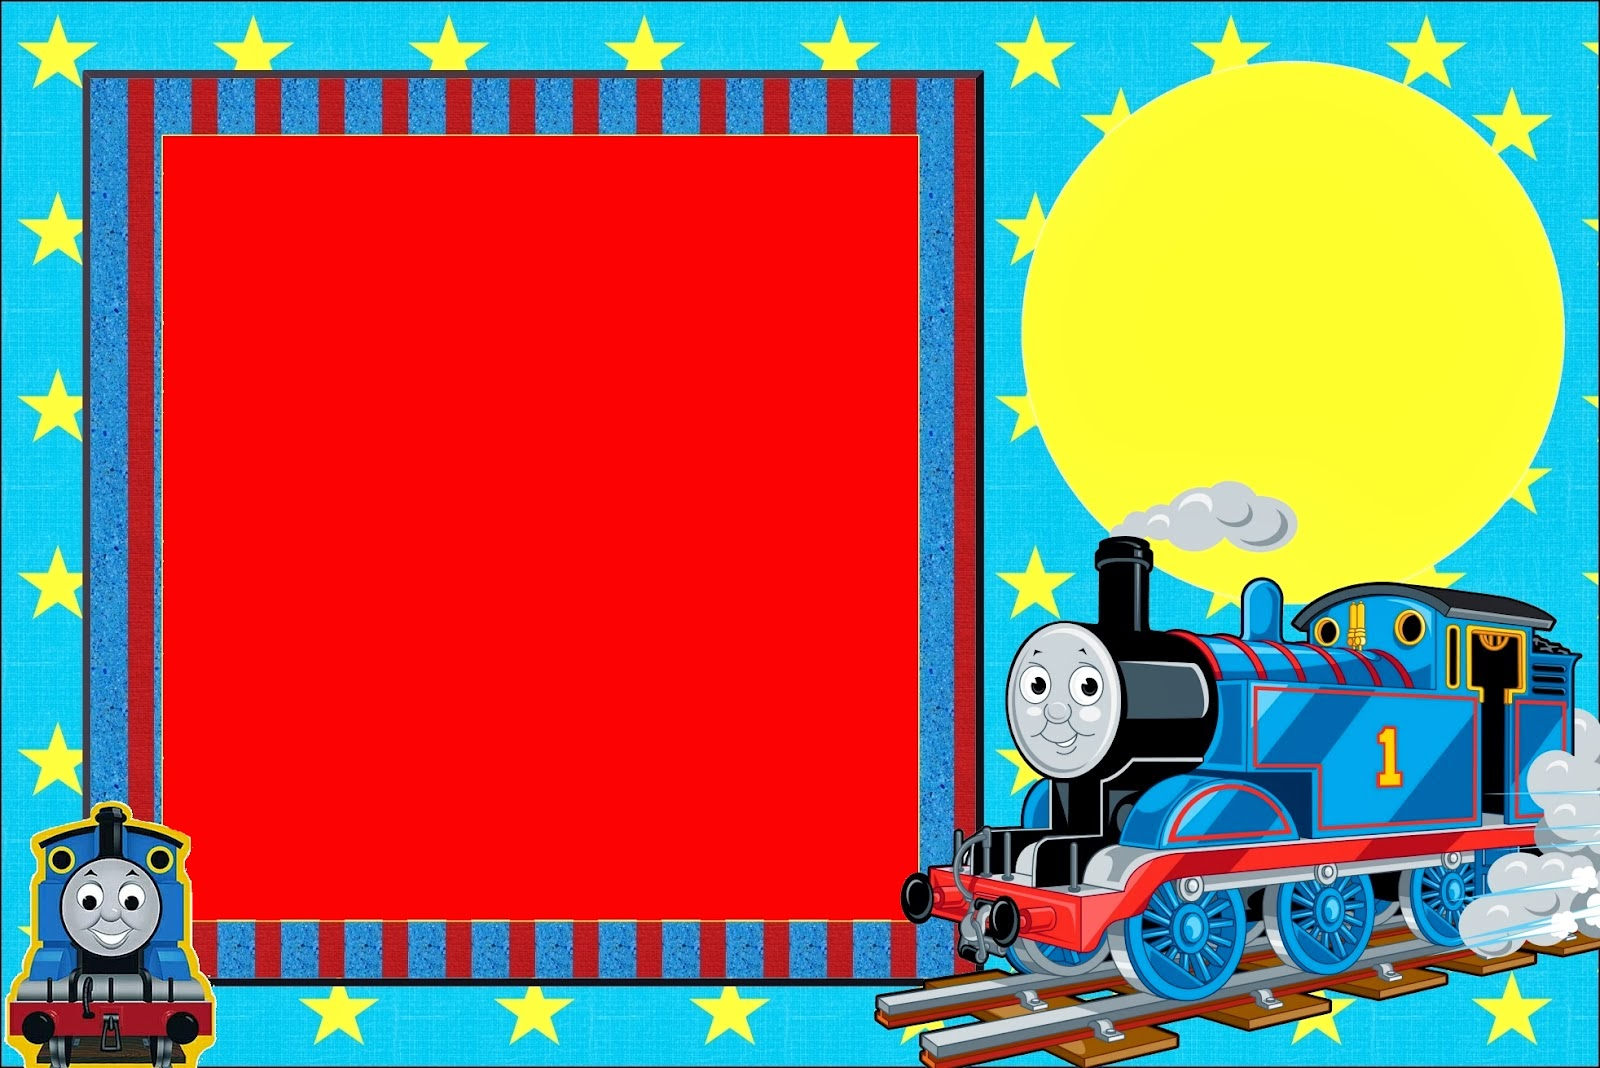 Thomas The Train Free Printable Invitations Labels Or Cards